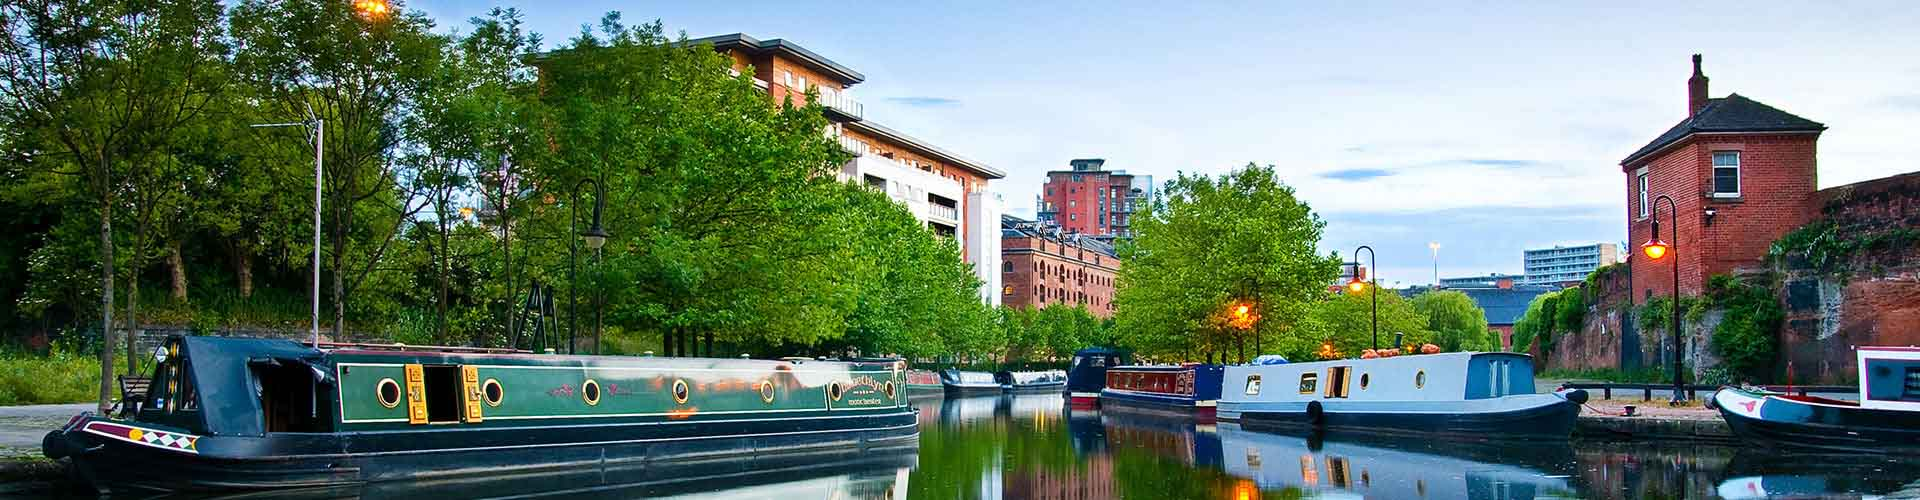 Manchester – Hotels in Ancoats. Maps of Manchester, Photos and Reviews for each Hotel in Manchester.